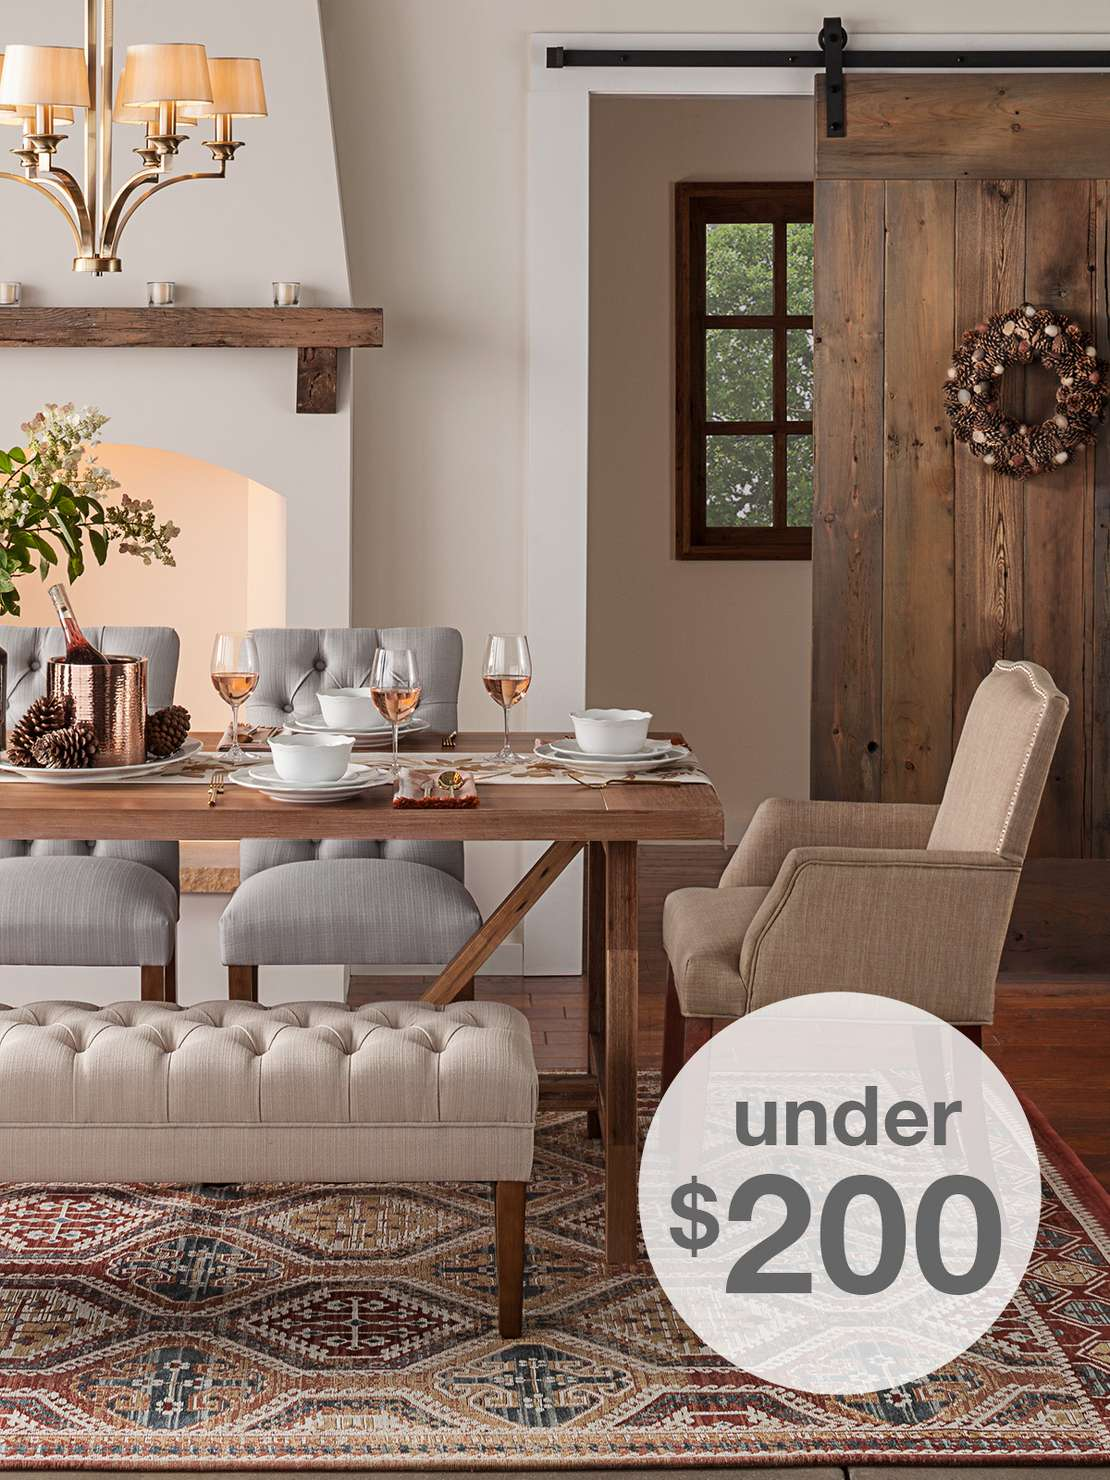 Kids table and chair set target home design ideas - Dining Chairs Under 200